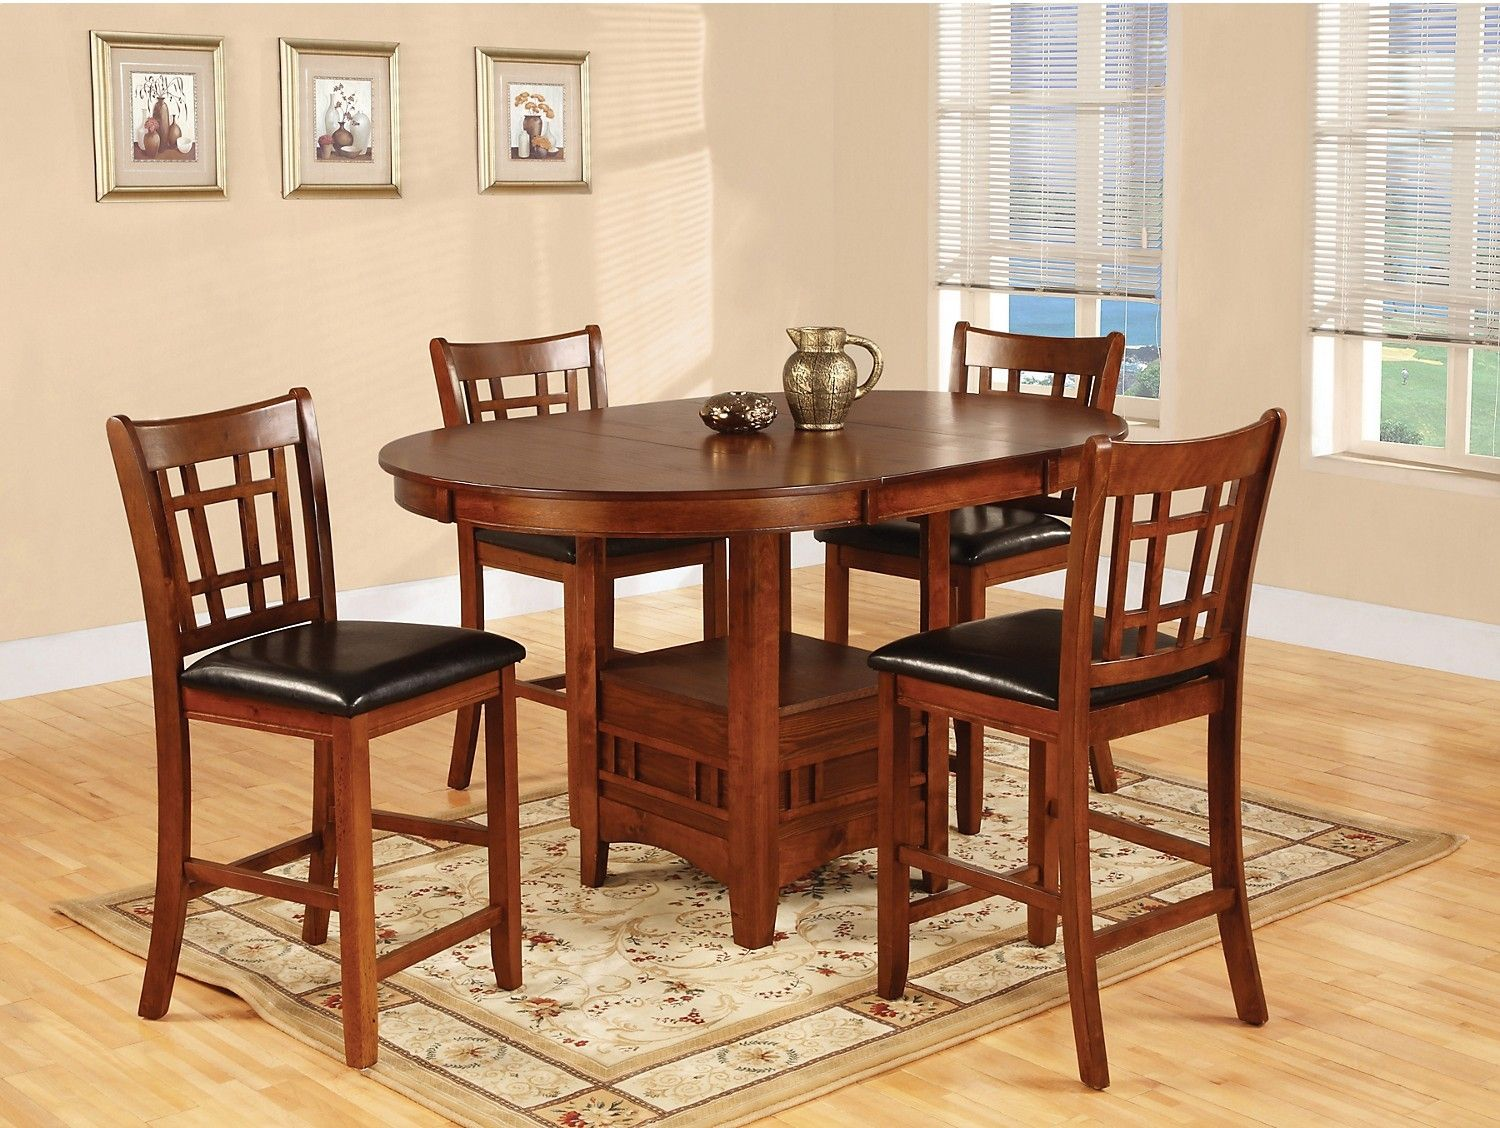 Dalton 5 Piece Walnut Counter Height Dining Package The Brick